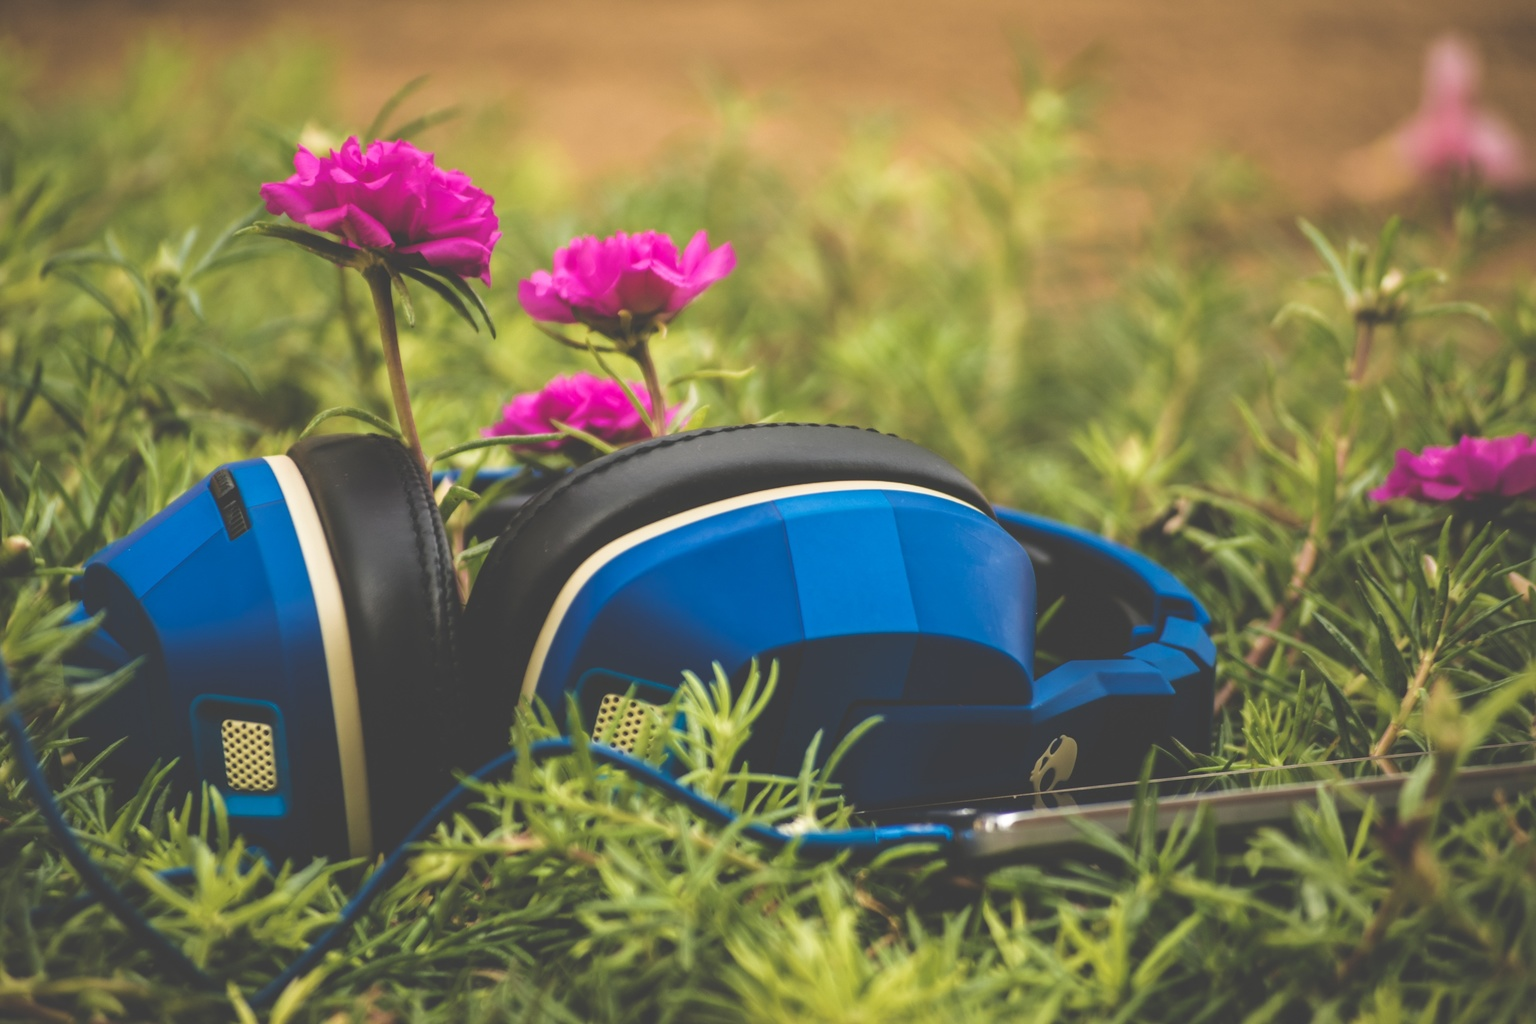 Spend a day in the #sun while listening to your favorite #jams. #tranquilsunday